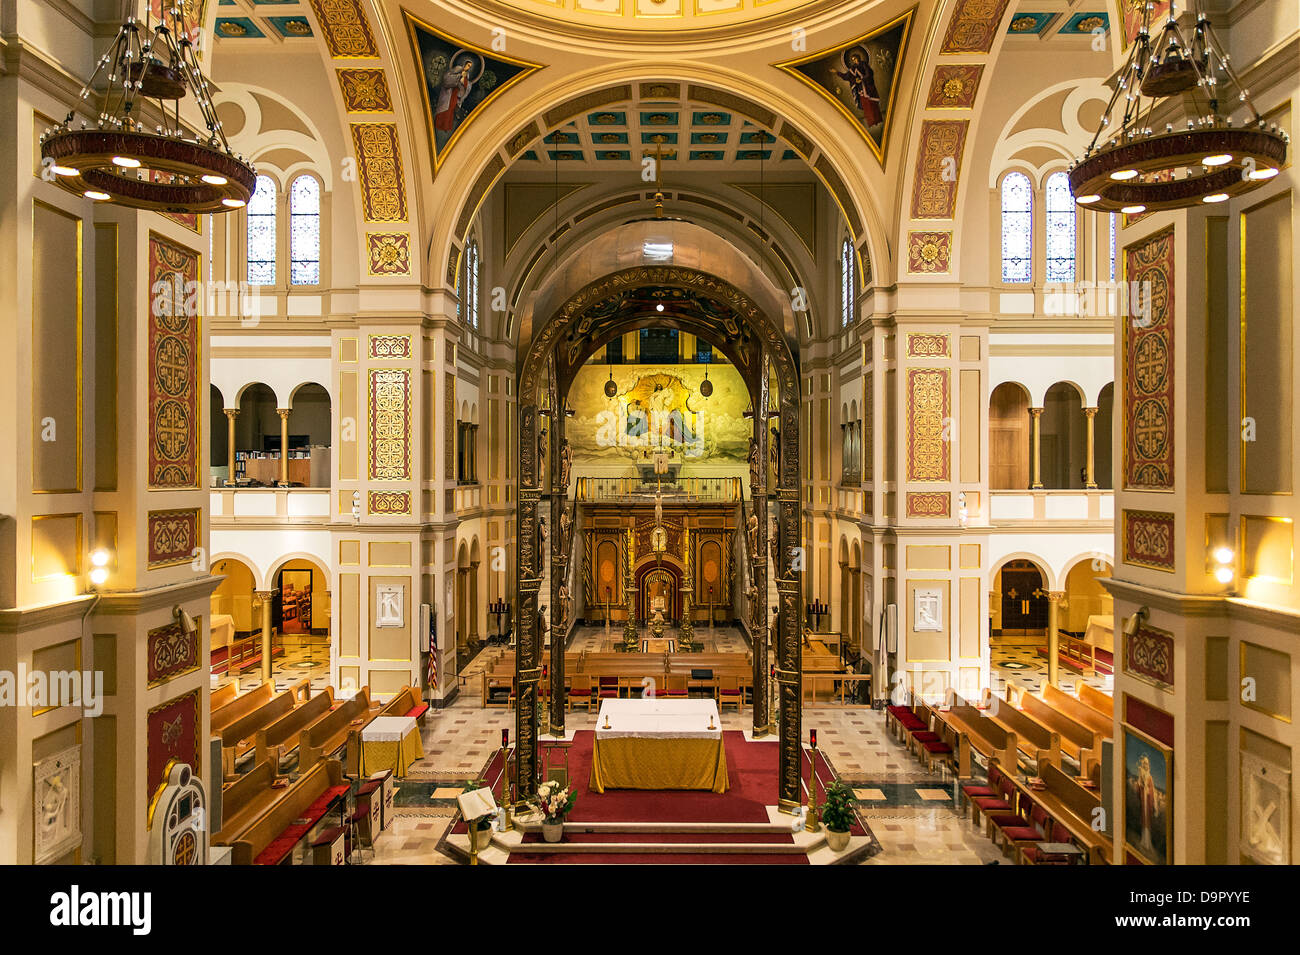 Interior, The Memorial Church of the Holy Sepulchre, Franciscan Monastery of the Holy Land in America, Washington - Stock Image